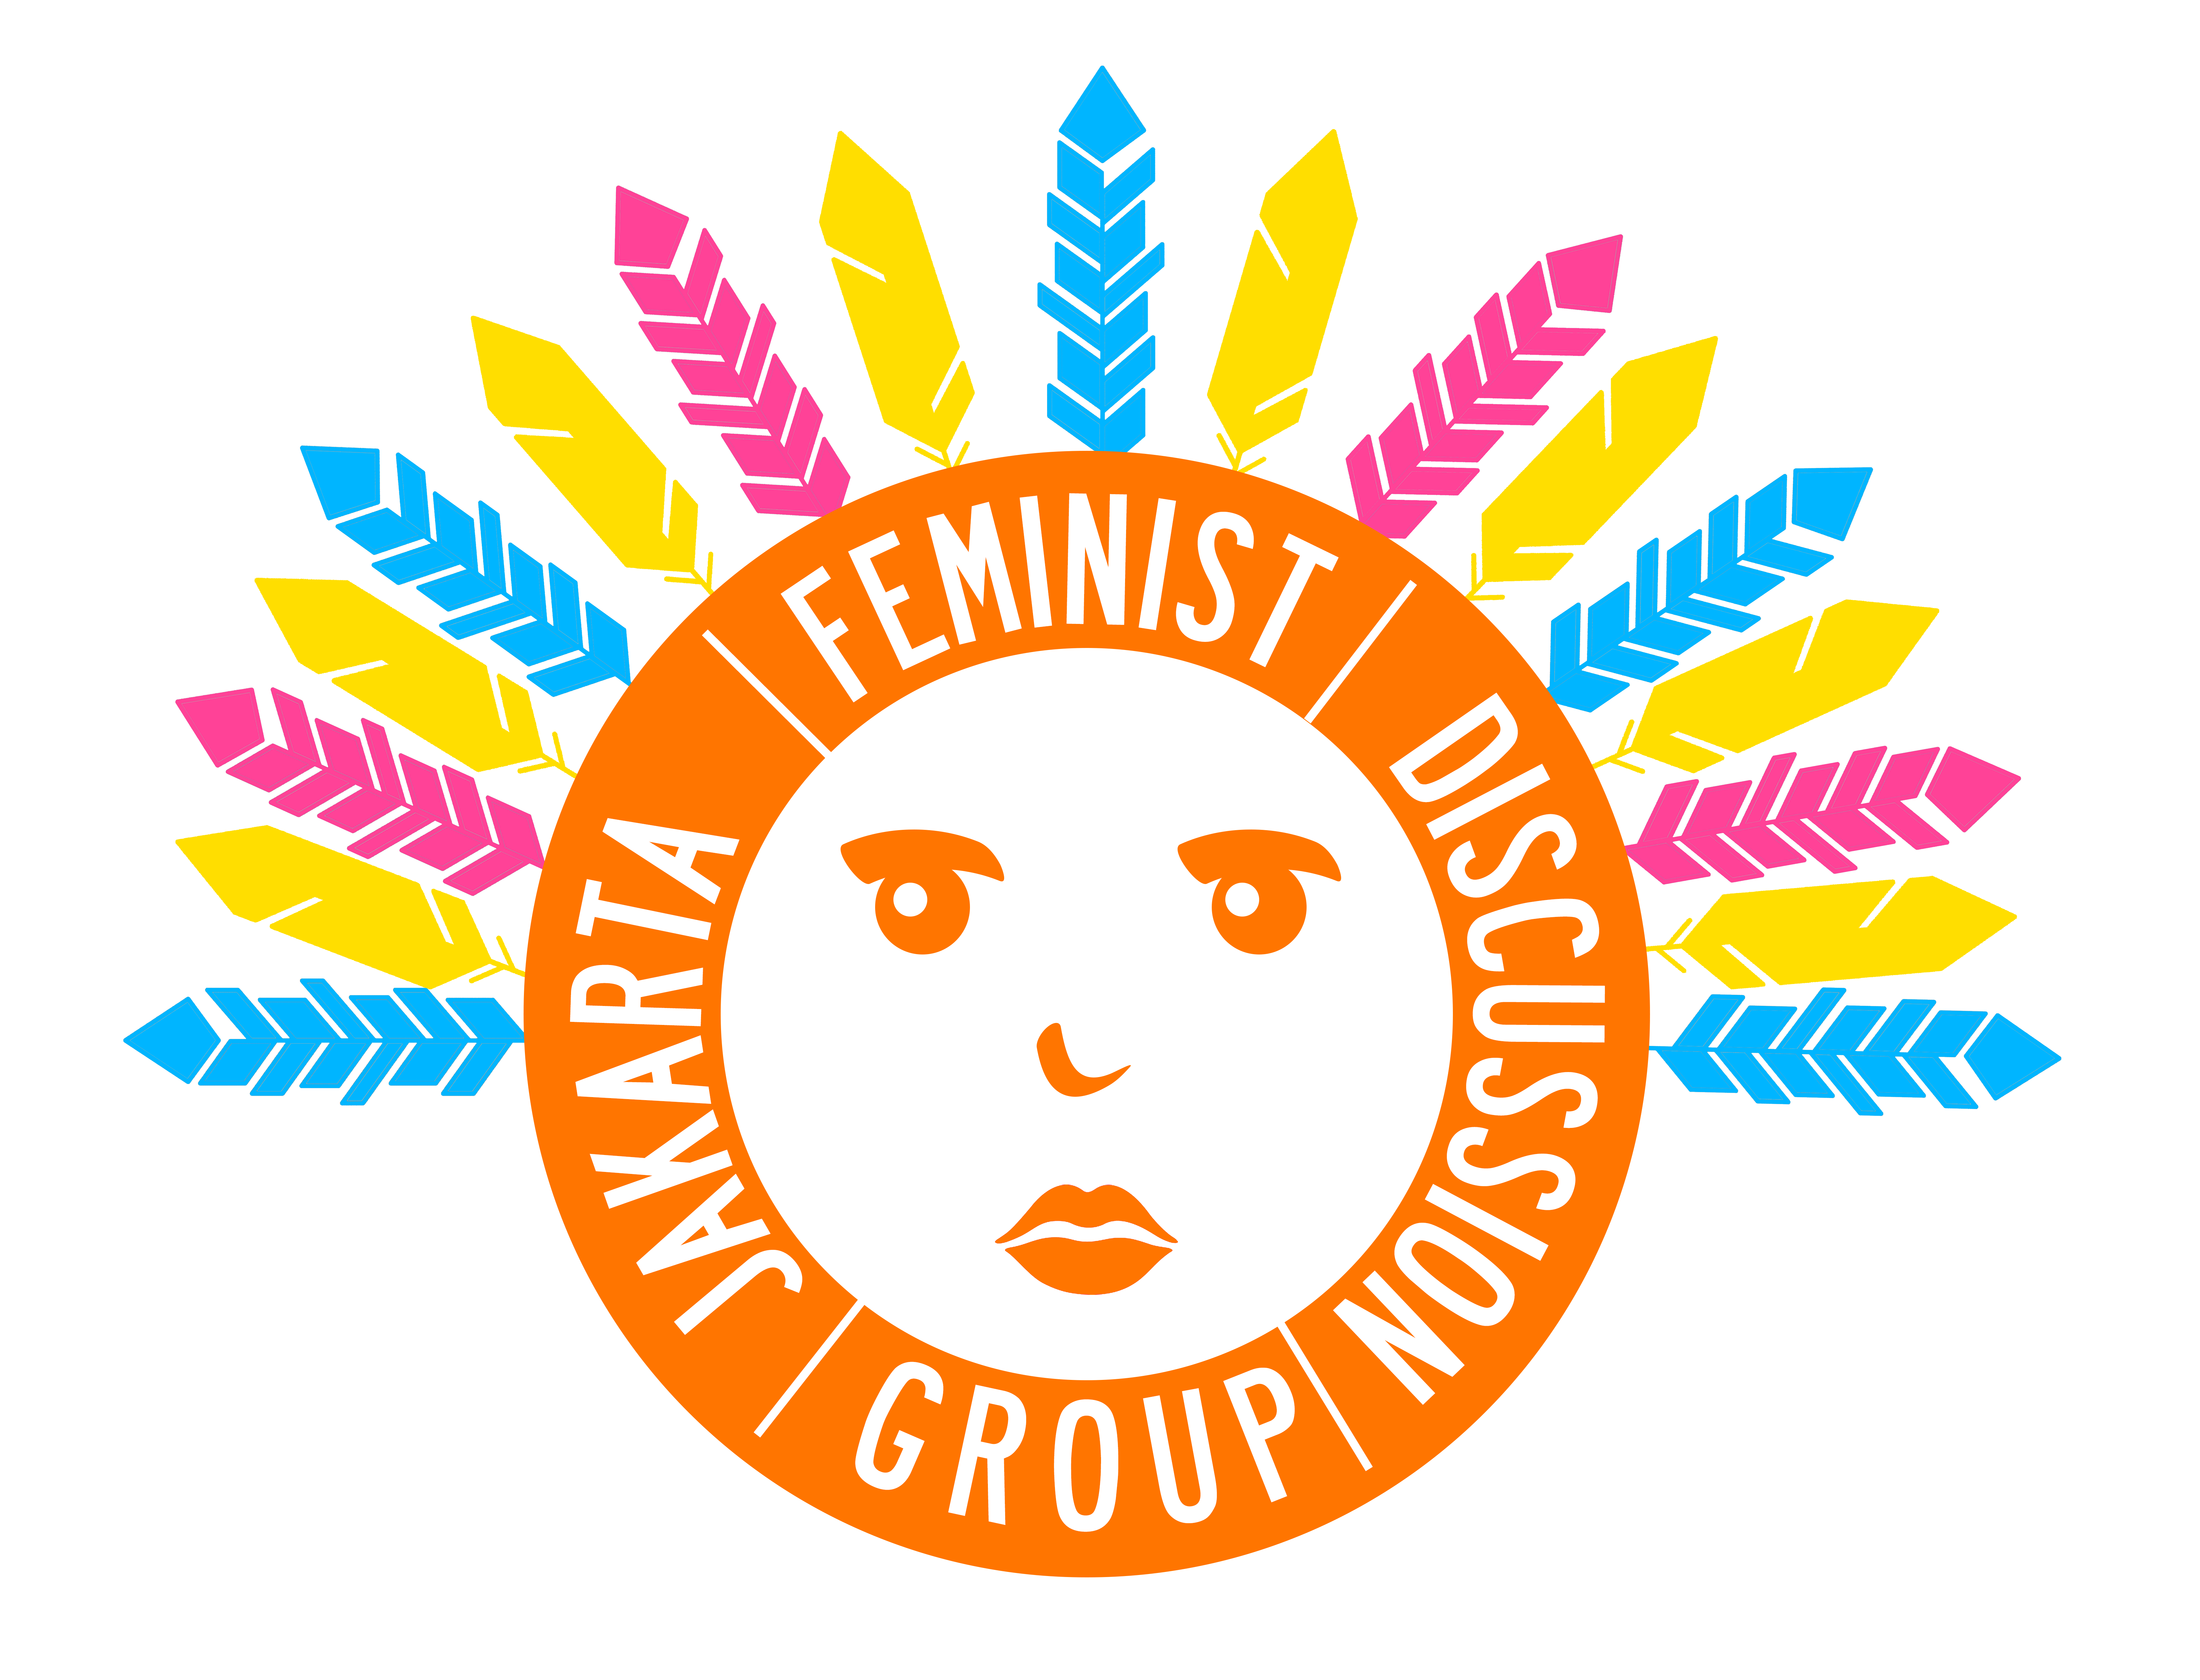 Jakarta Feminis Discussion Group